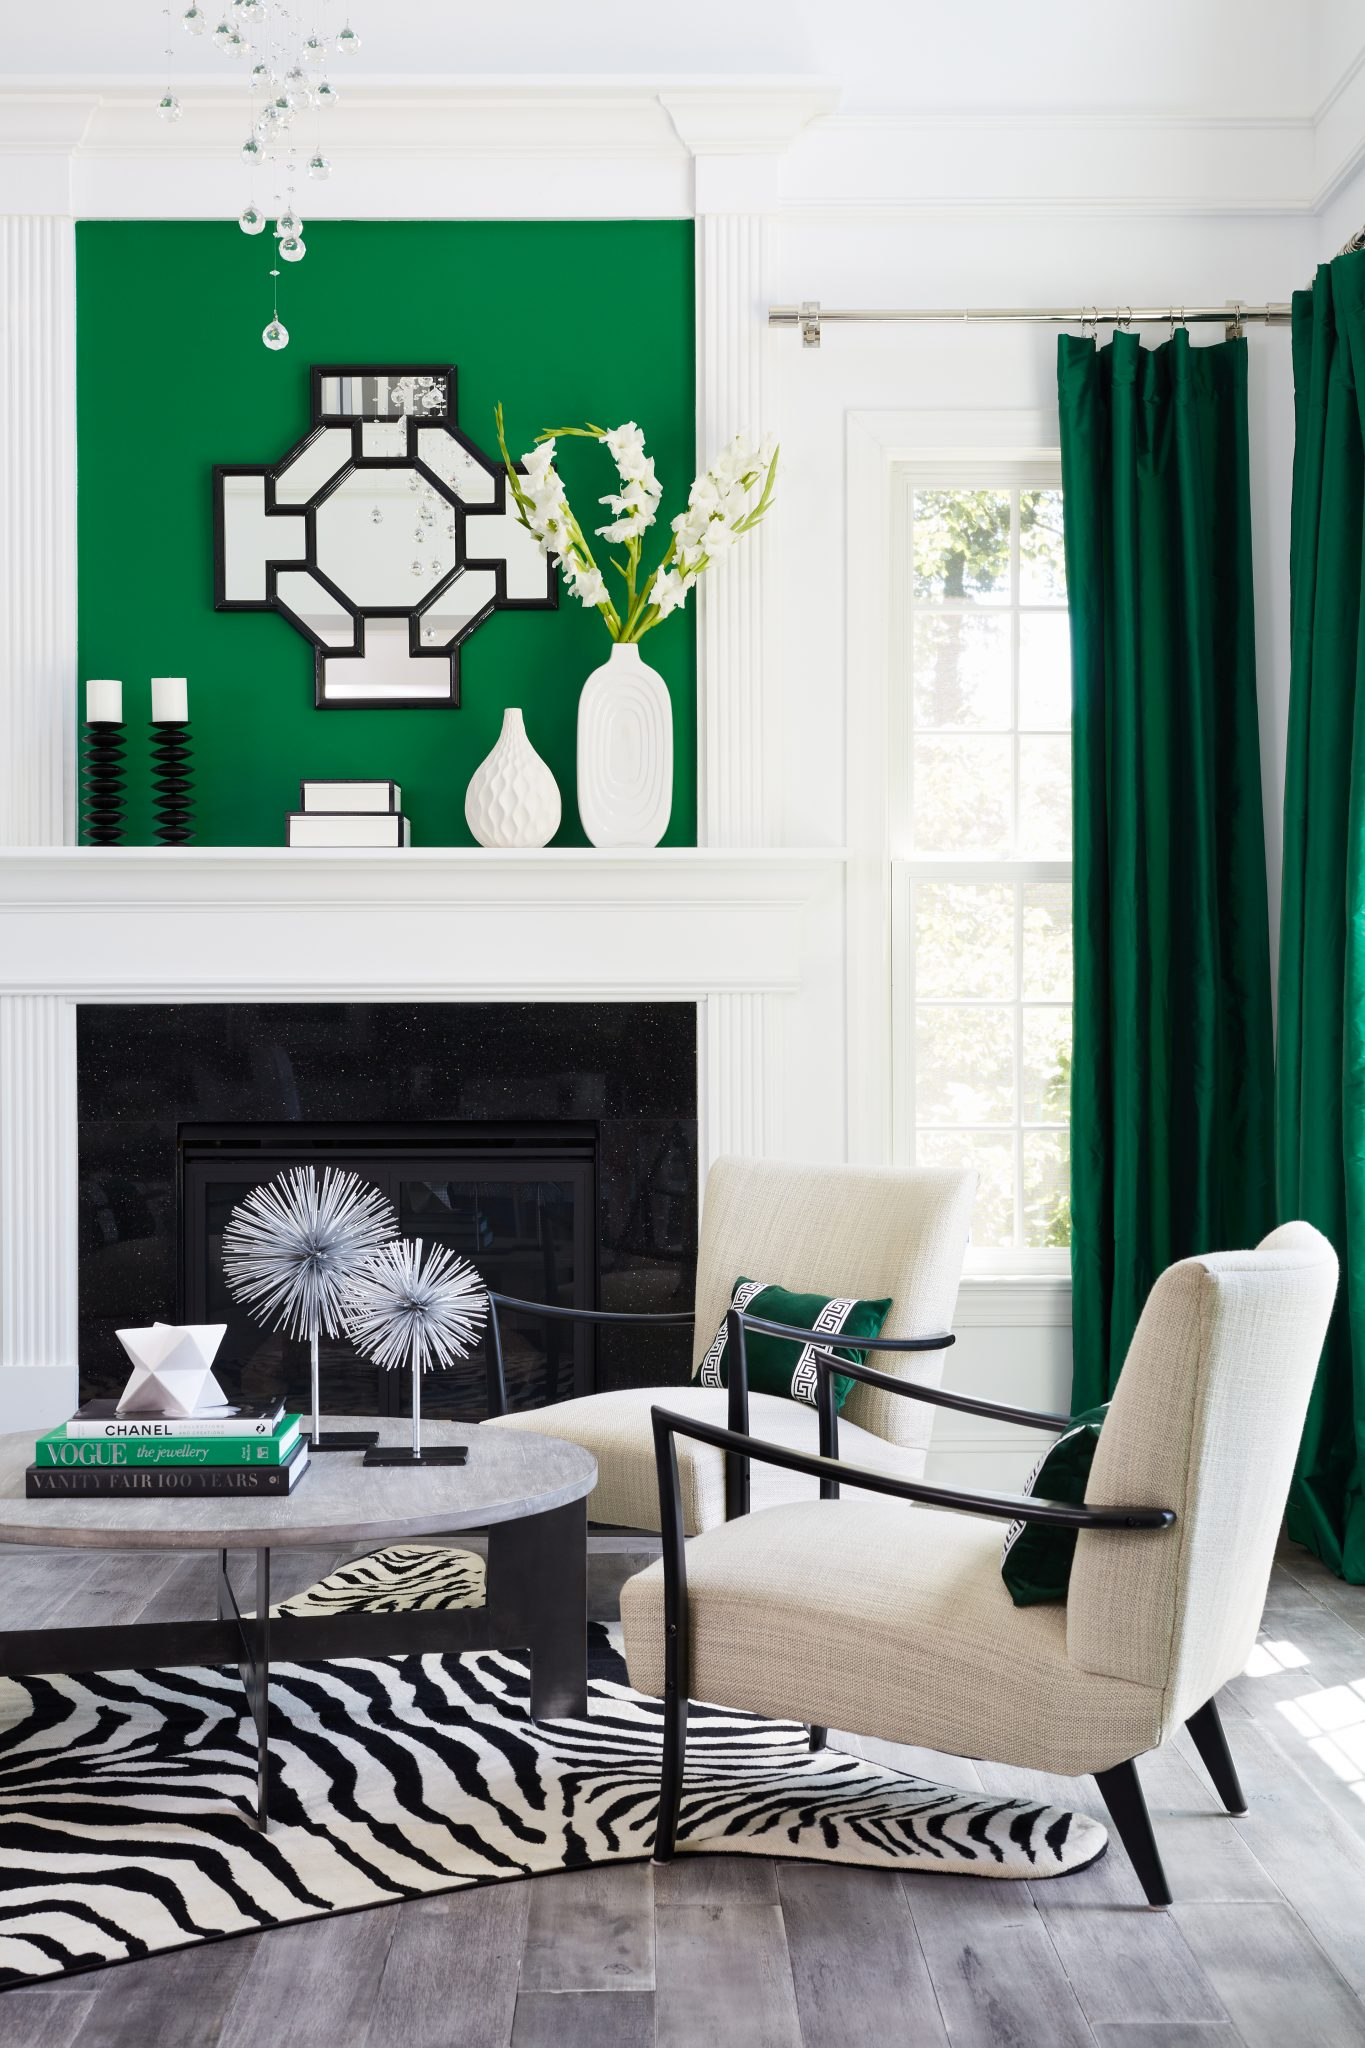 A panel painted in Sherwin Williams Green Belt adds a pop of color above the fireplace.